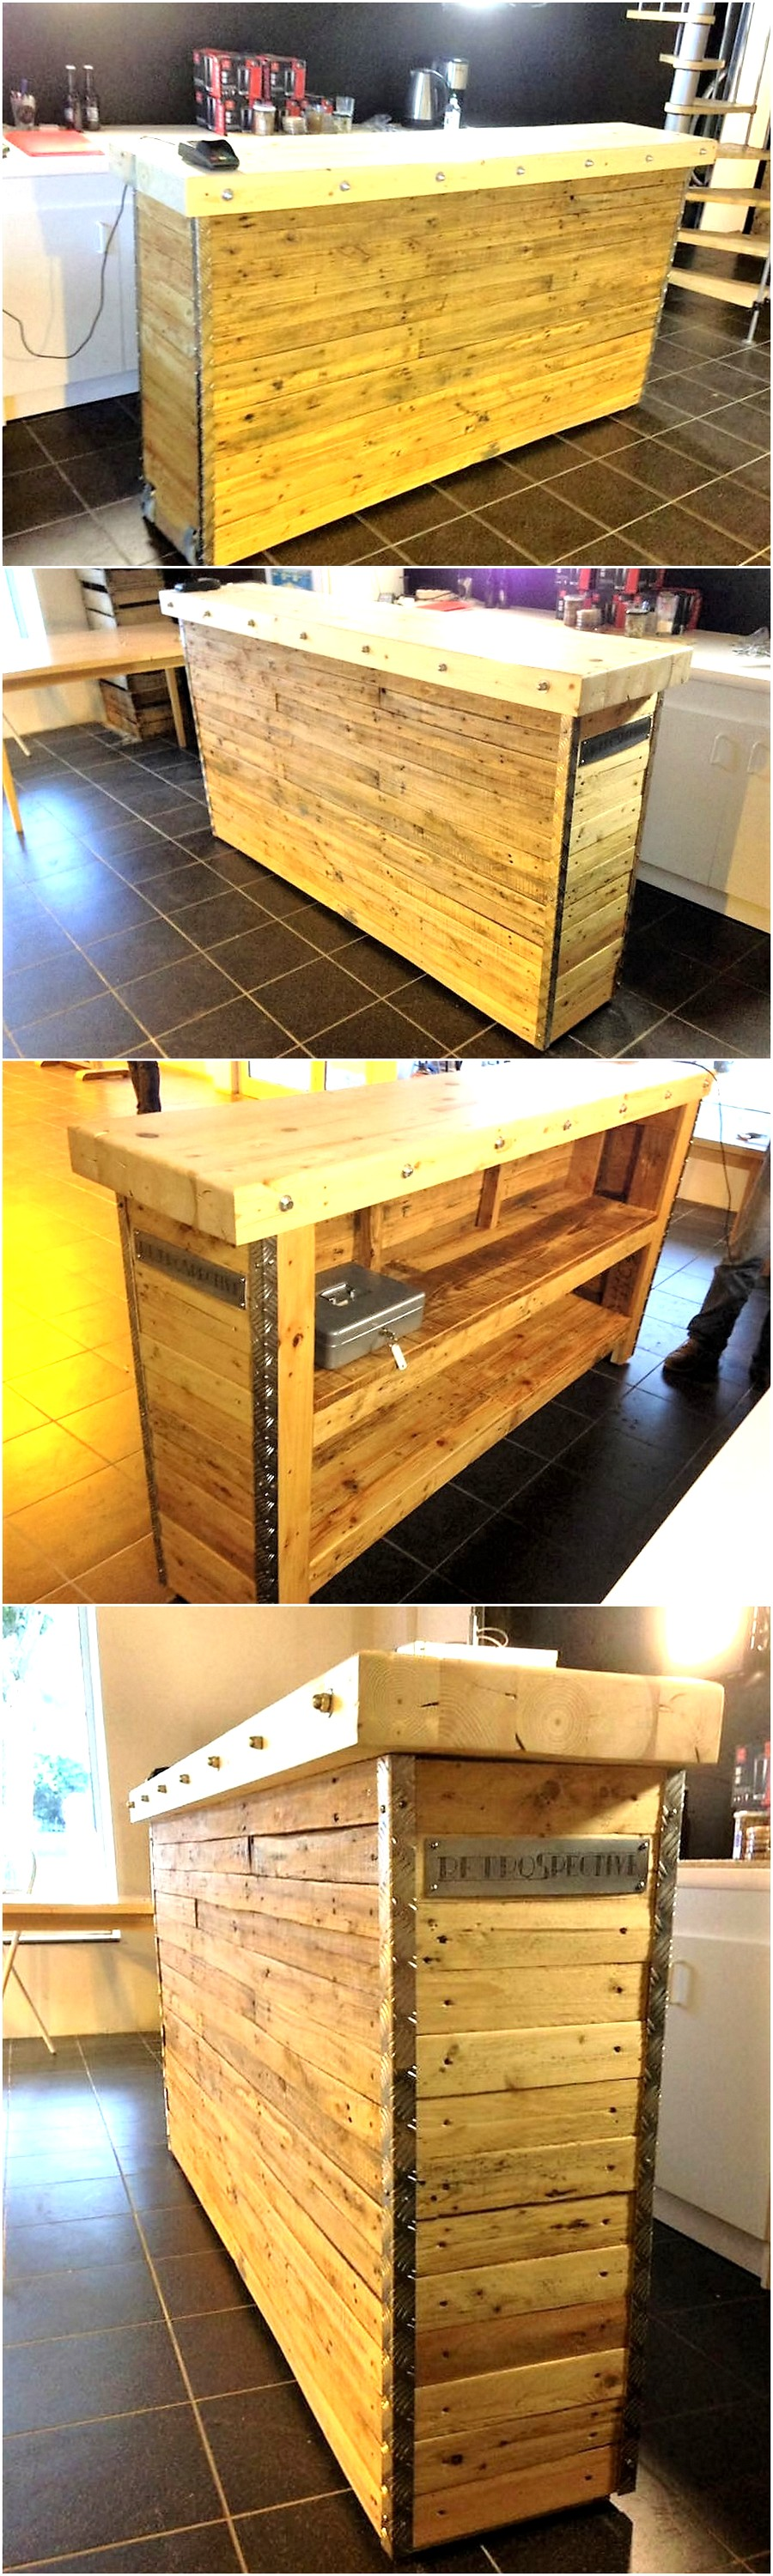 pallets-wood-made-bar